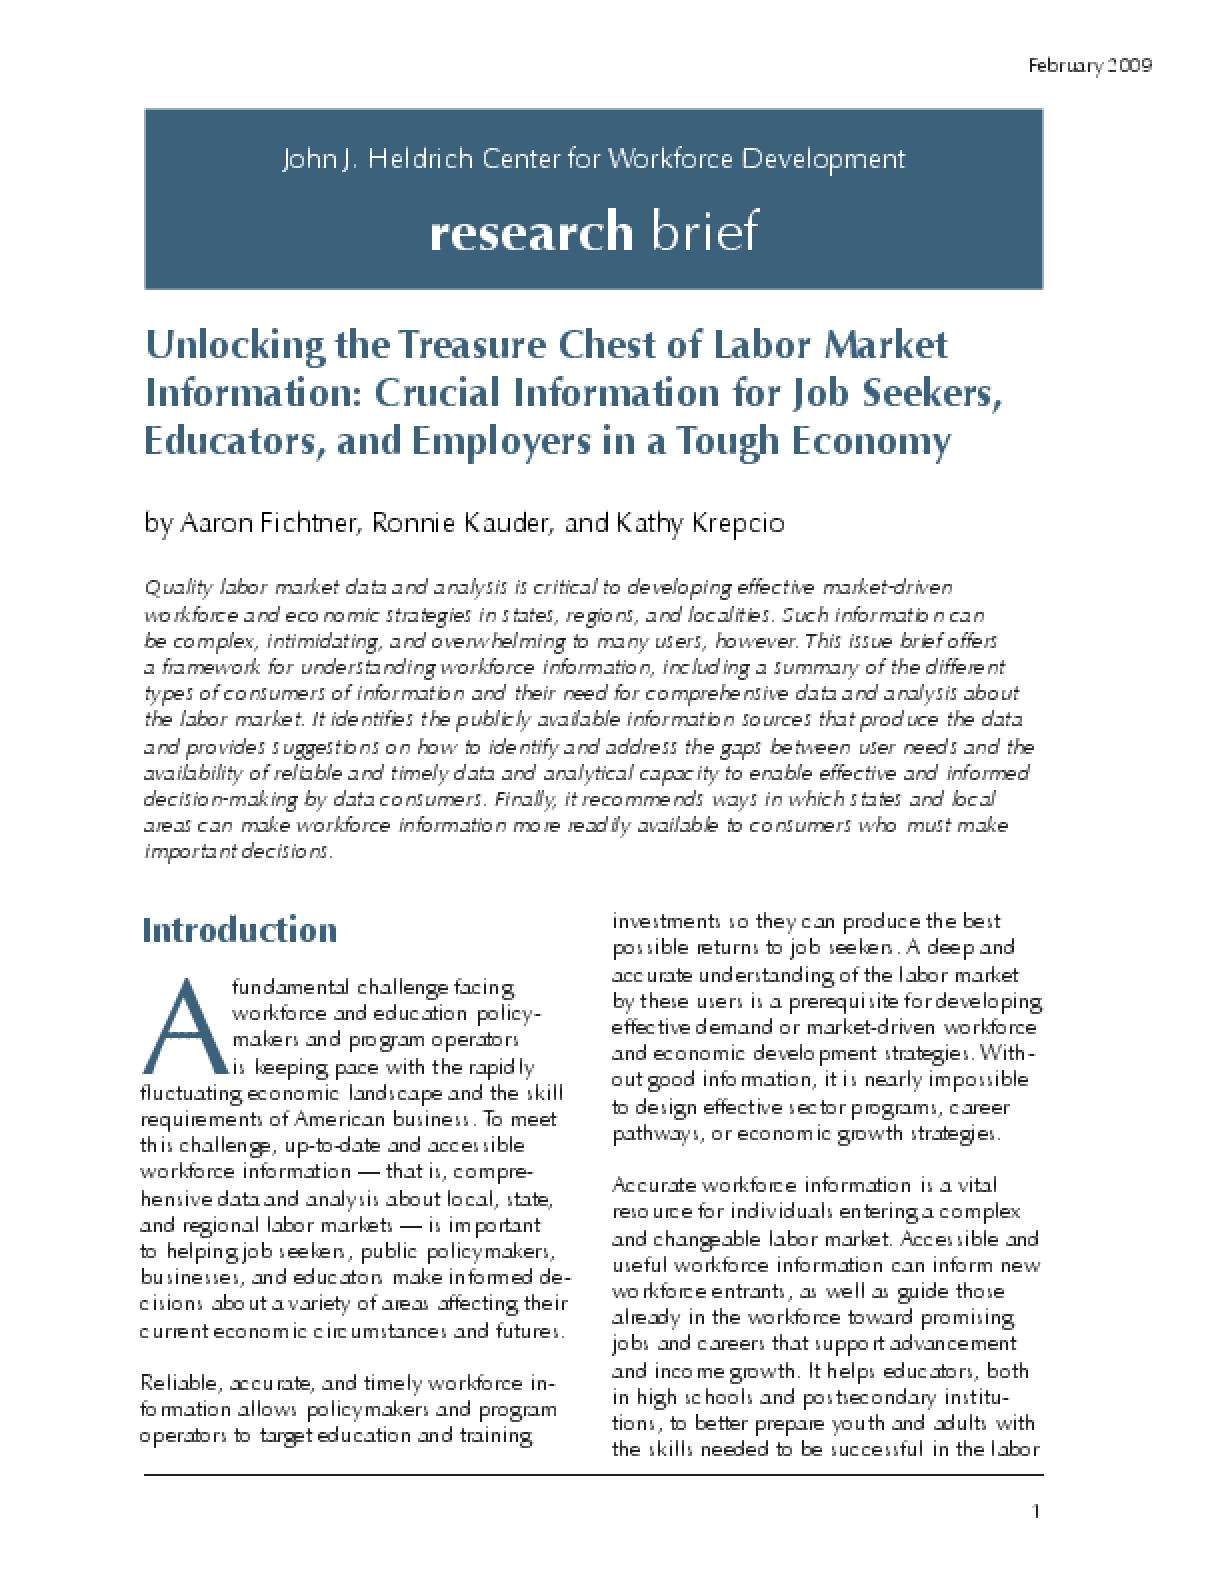 Unlocking the Treasure Chest of Labor Market Information: Crucial Information for Job Seekers, Educators, and Employers in a Tough Economy